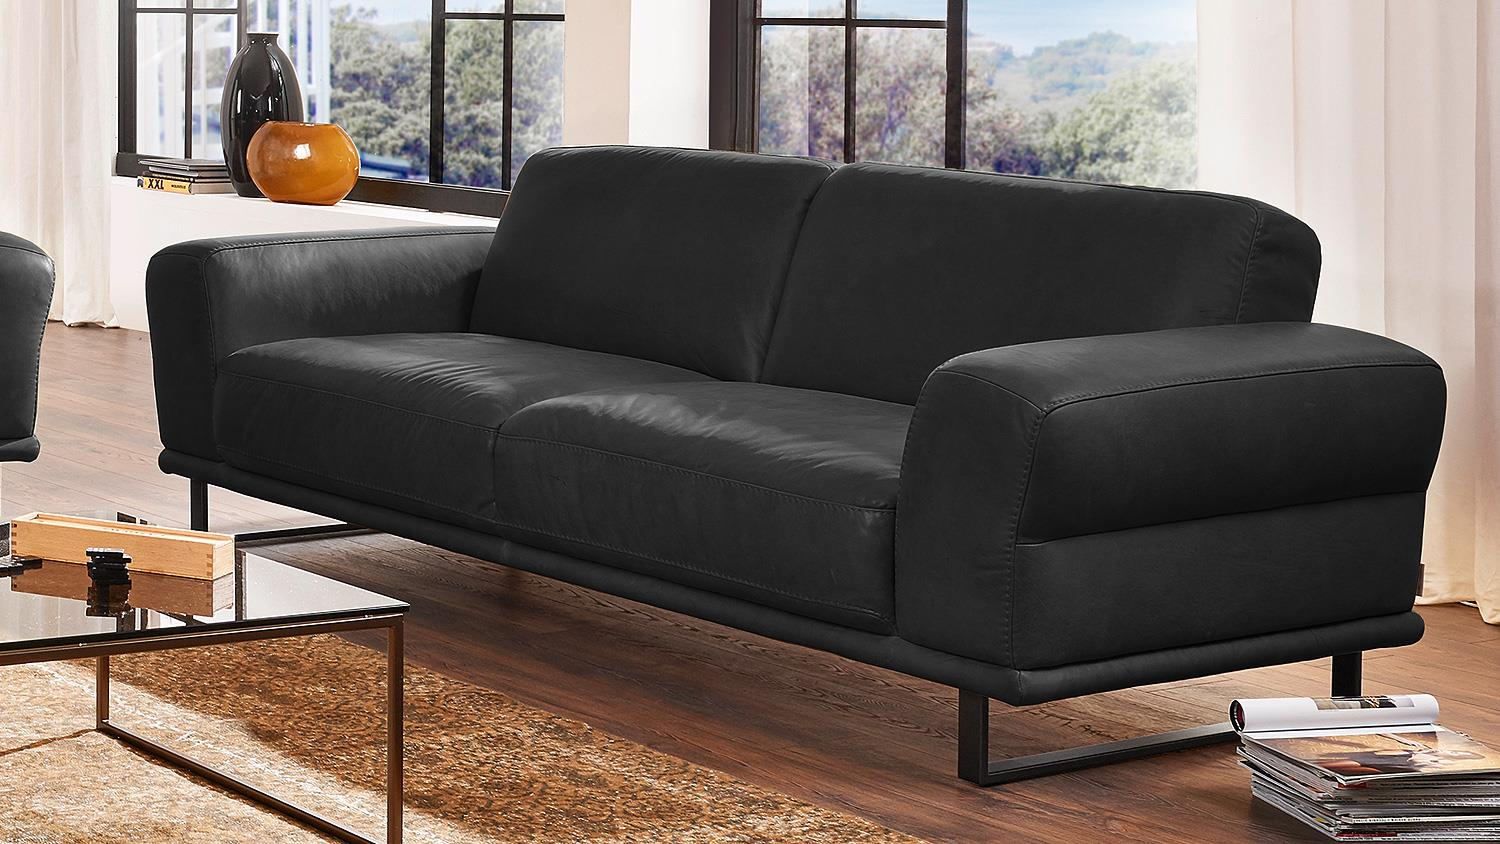 Willi Schillig Sessel Garnitur Montanaa 2er Sofa In Leder Schwarz Willi Schillig